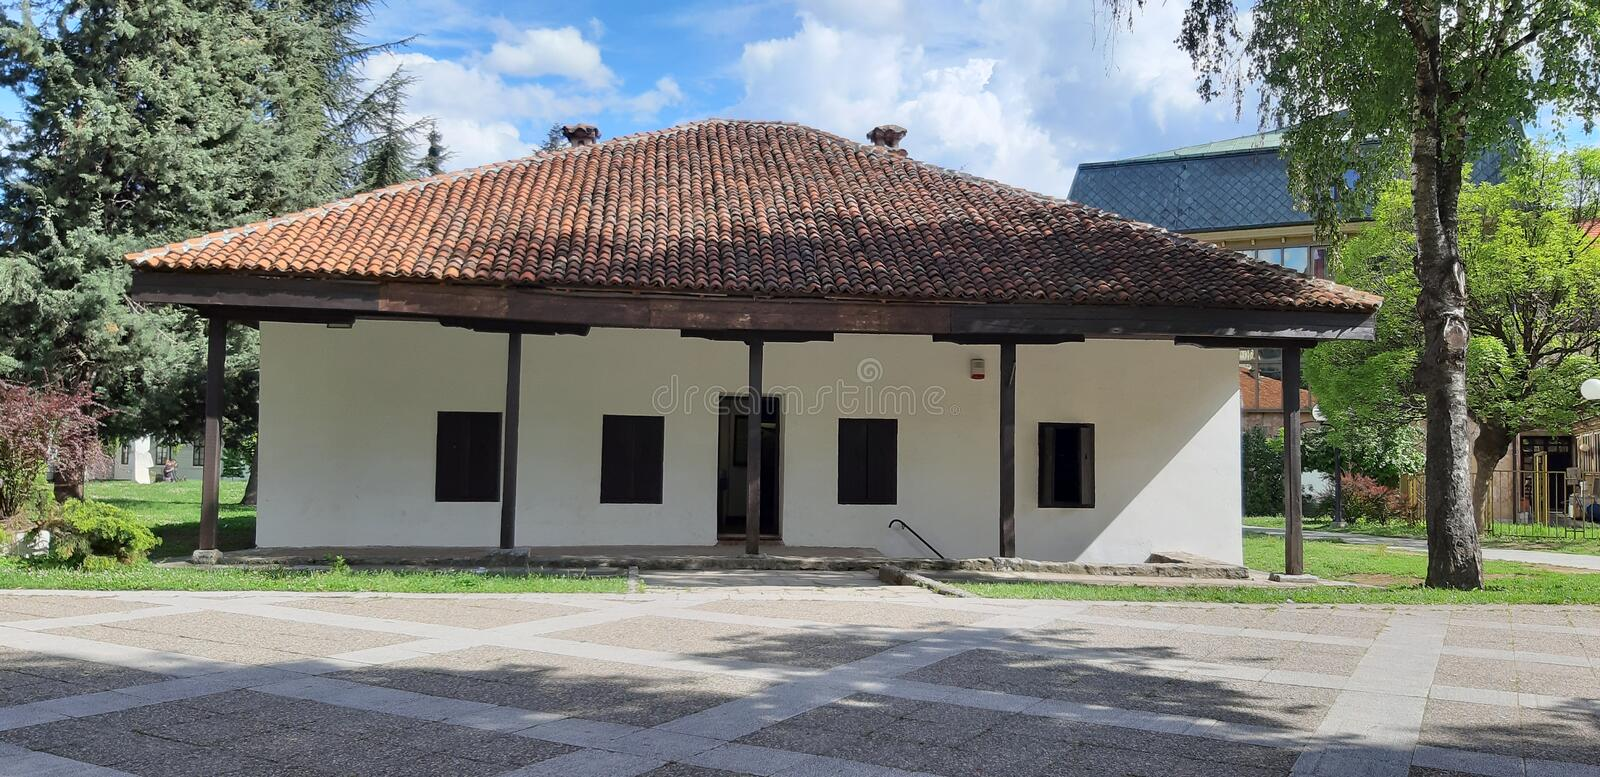 The oldest building in Valjevo, Serbia is once a prison and now museums. The oldest building in Valjevo, Serbia is once a prison and now stock photography